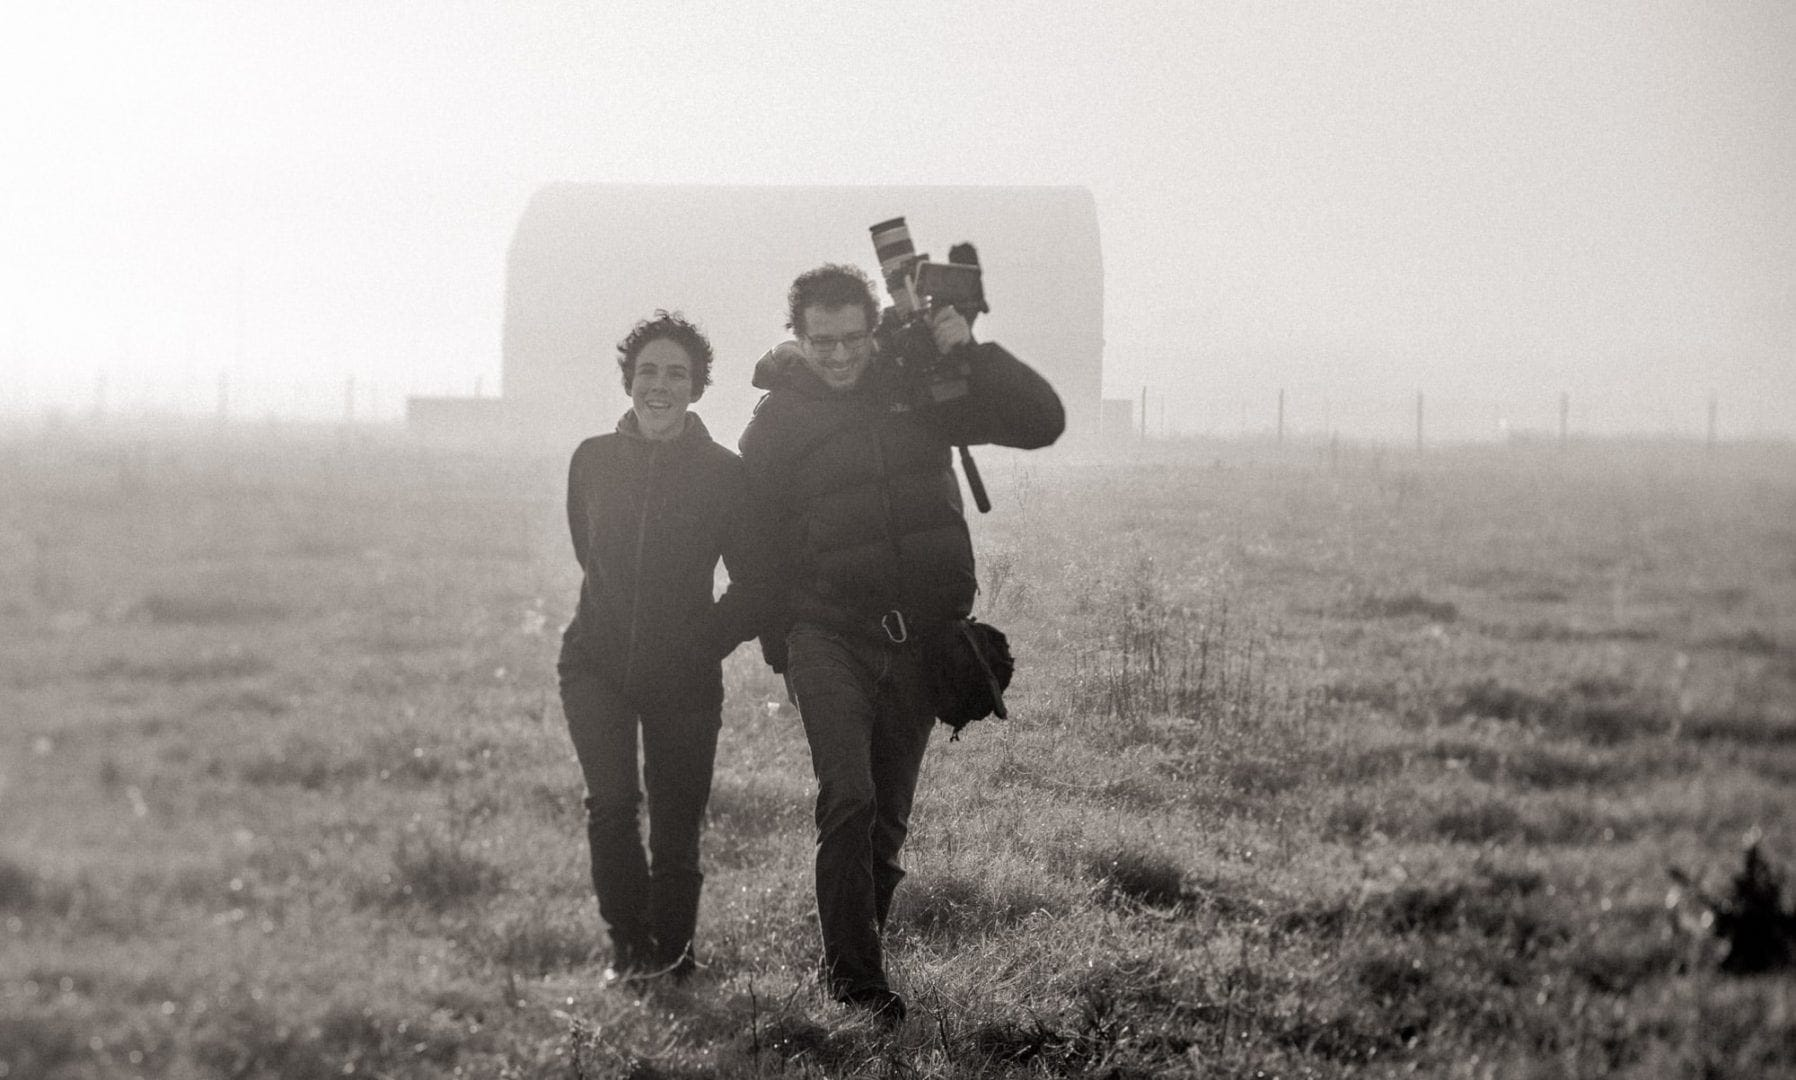 Cinematographer Theo Ribeiro and director Laura Belinky shooting B-roll during the making of Land of The Wind in Patagonia